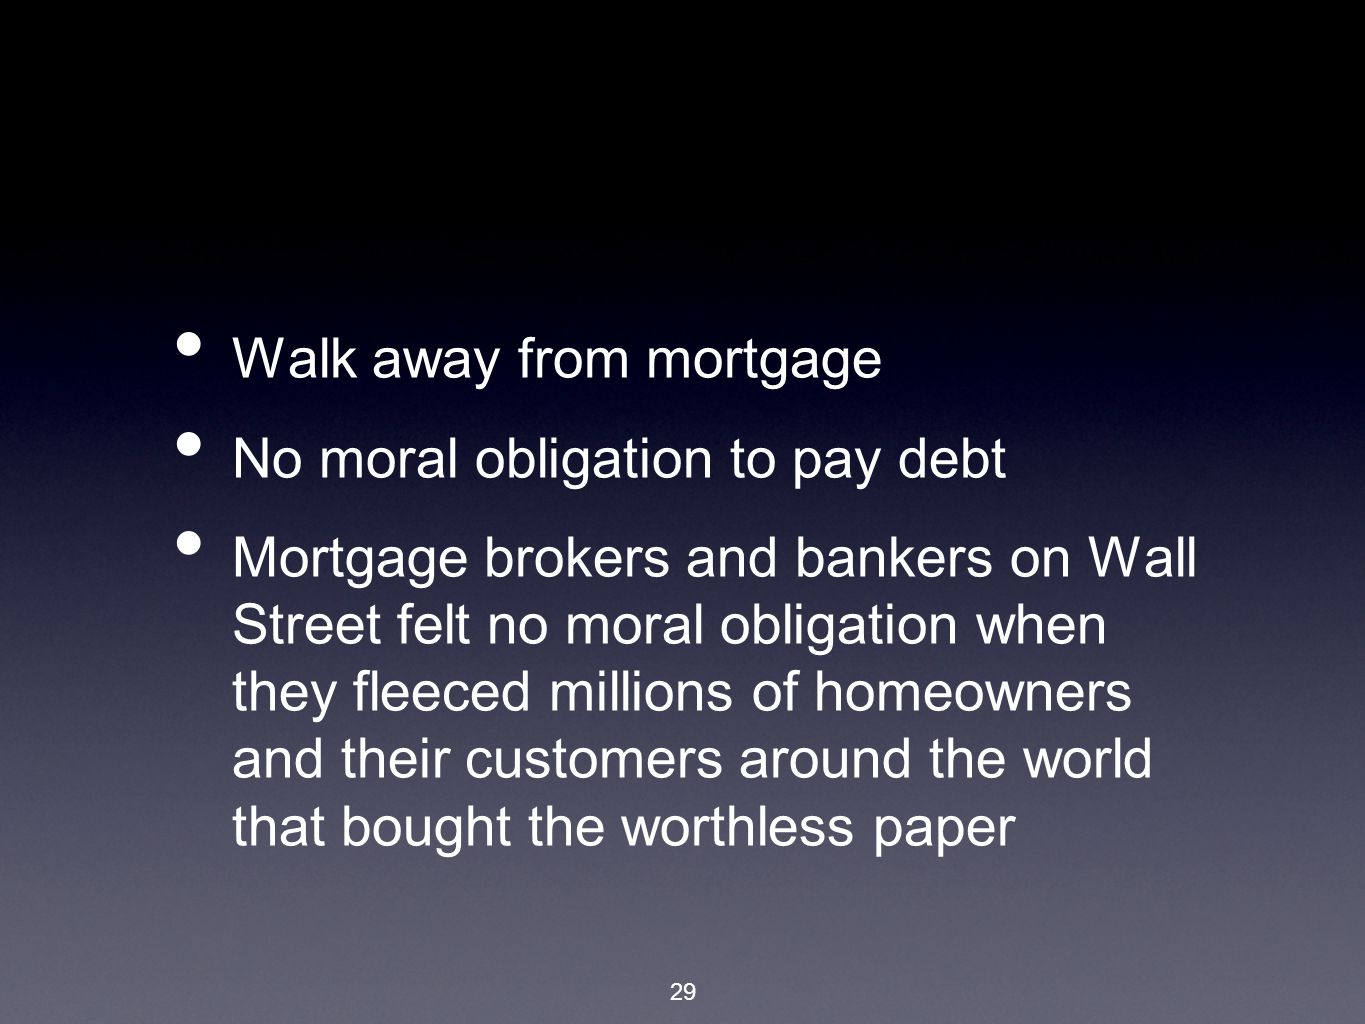 29 Walk away from mortgage No moral obligation to pay debt Mortgage brokers and bankers on Wall Street felt no moral obligation when they fleeced millions of homeowners and their customers around the world that bought the worthless paper